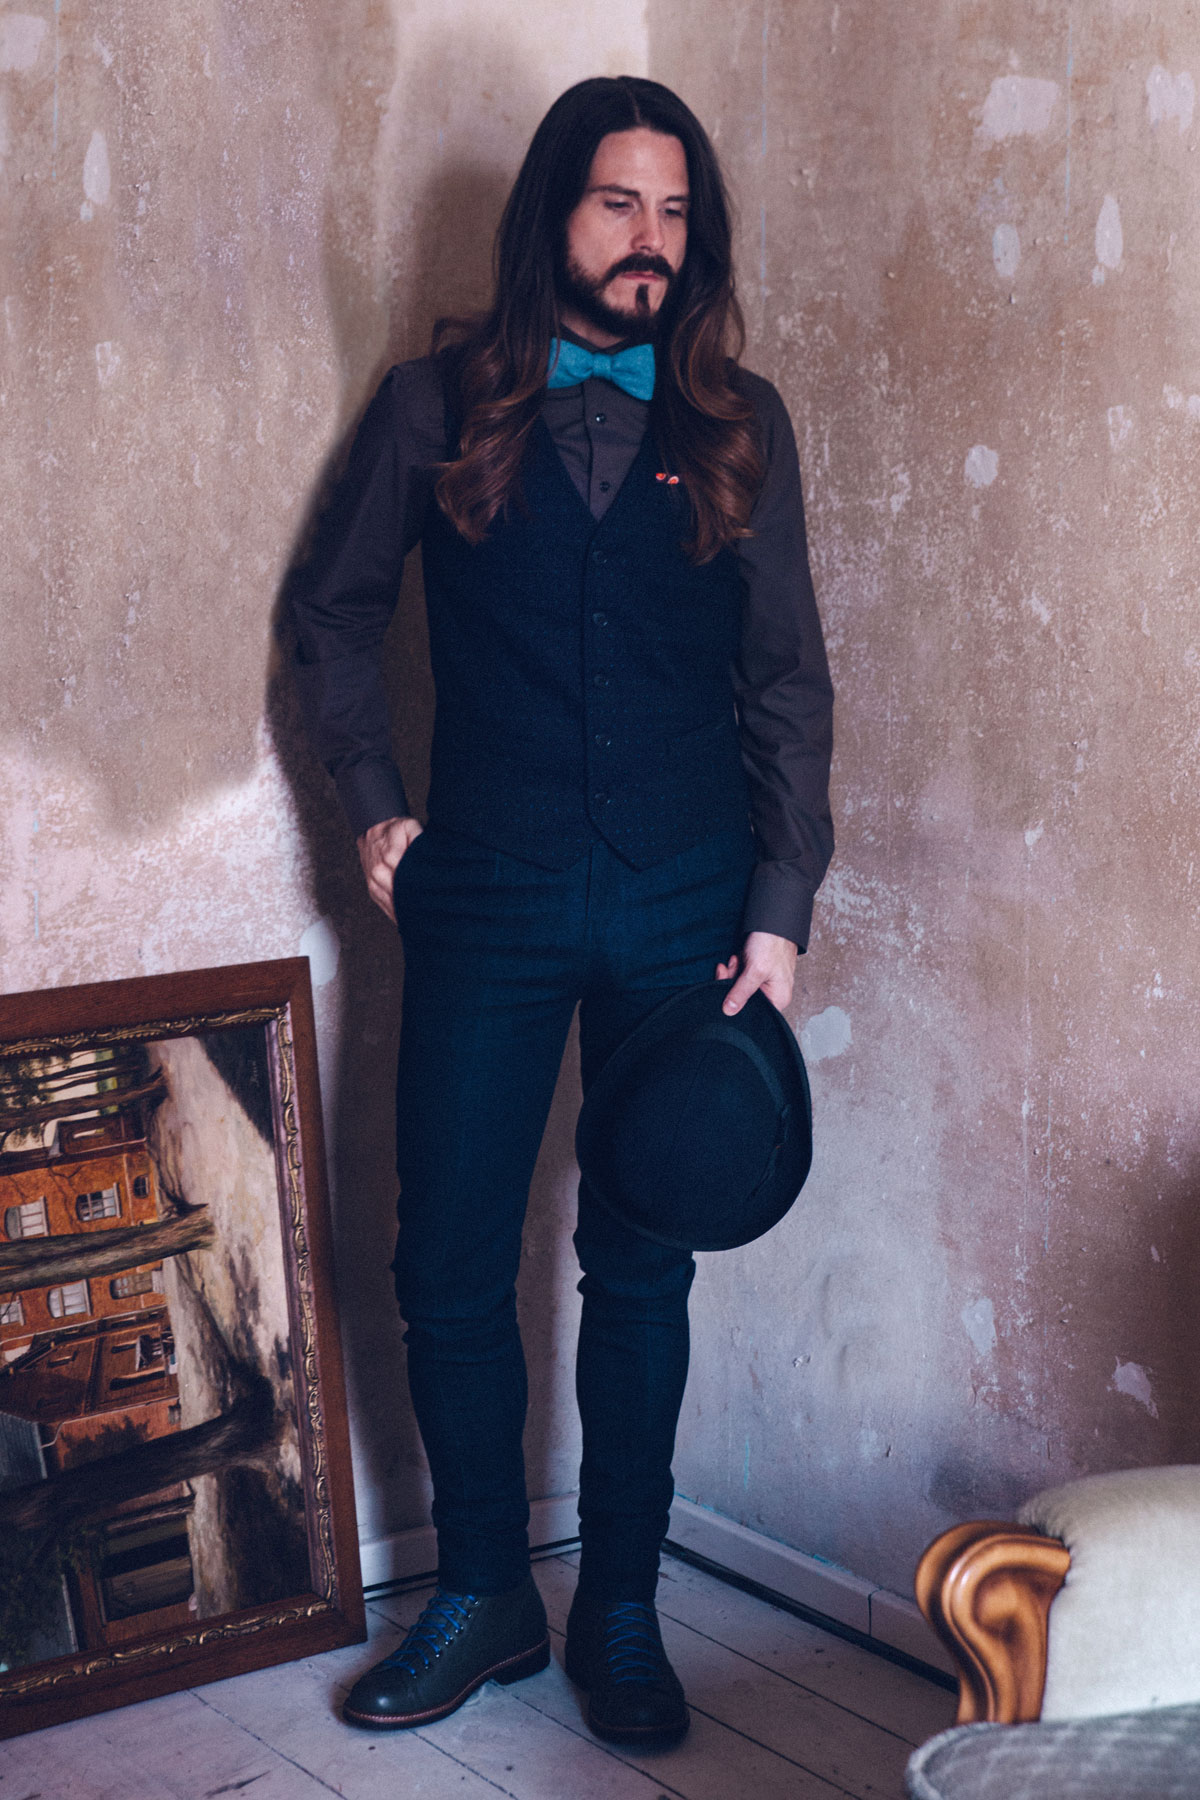 modeblog-maenner-preppy-style-fliege-weste-jeans-trend-outfit